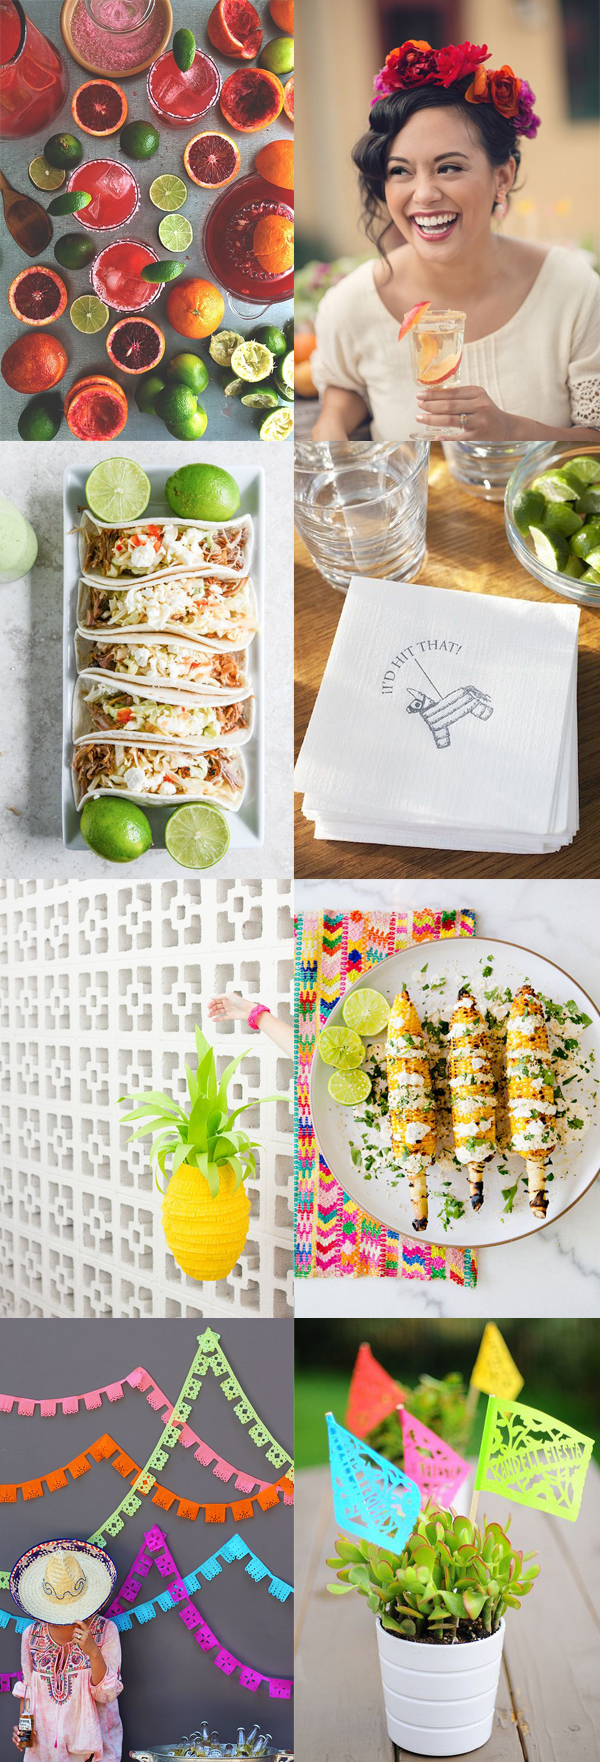 Fiesta bridal shower inspiration